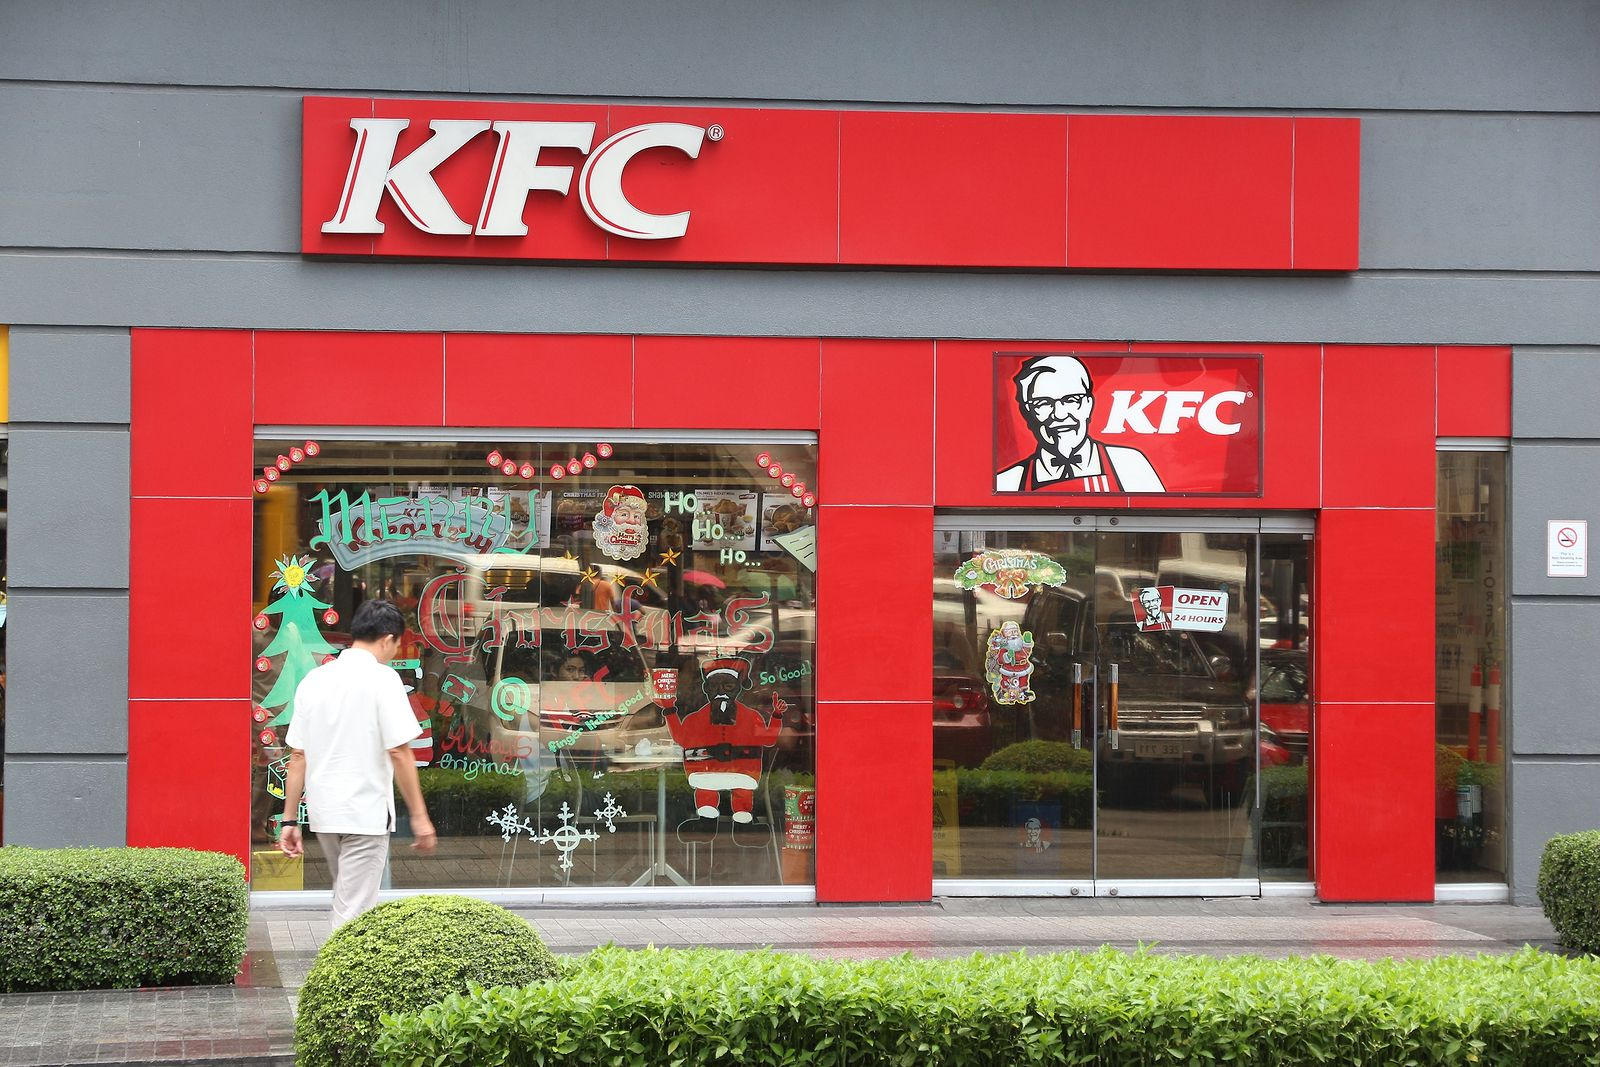 Restaurant Brands' KFC booms despite Pizza Hut sales slide | Inside Franchise Business